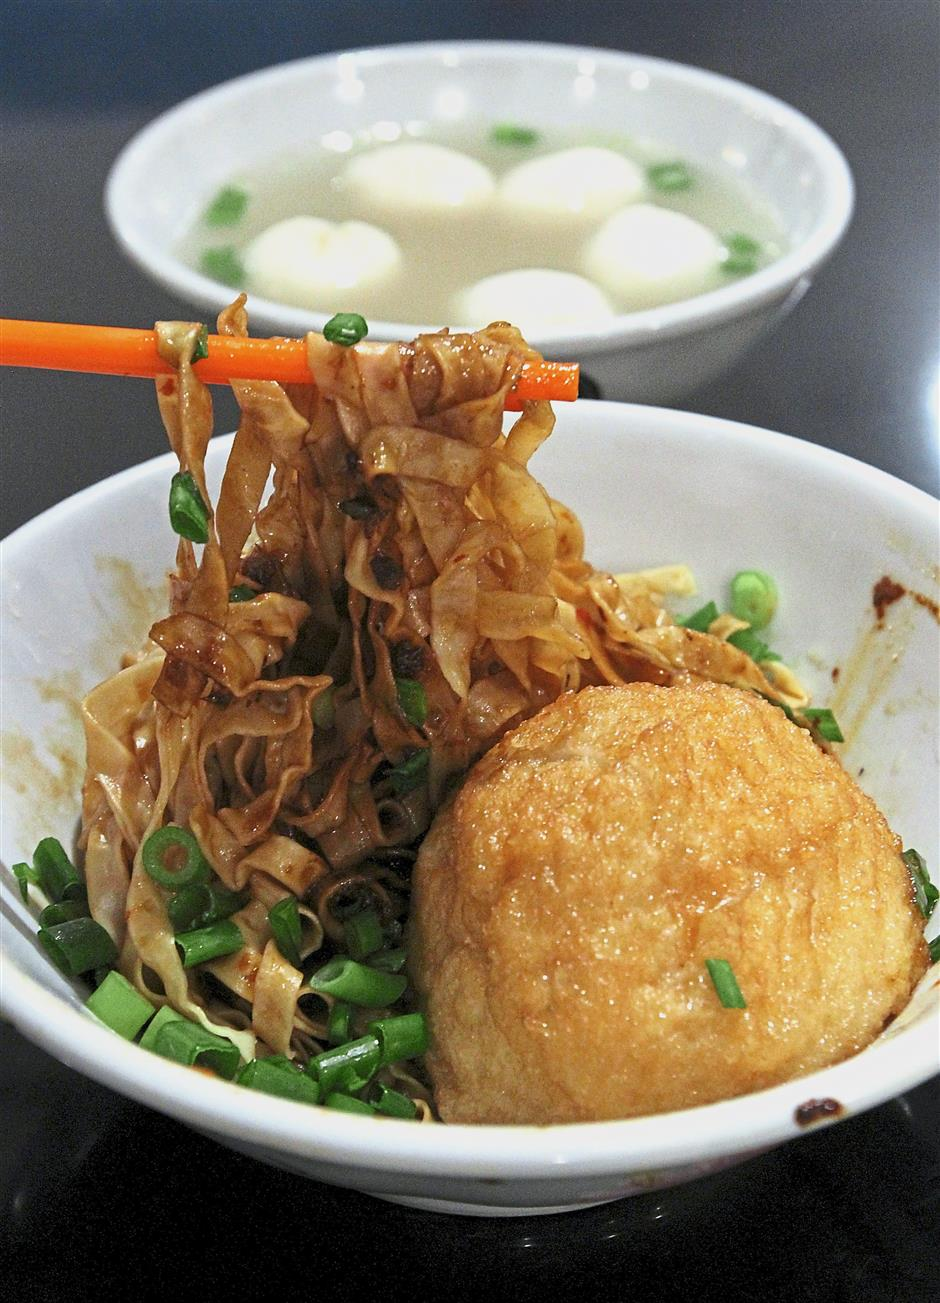 One of the specialities at Encik Tan is the fish cake noodles which comes with a generous portion of handmade fish cake.